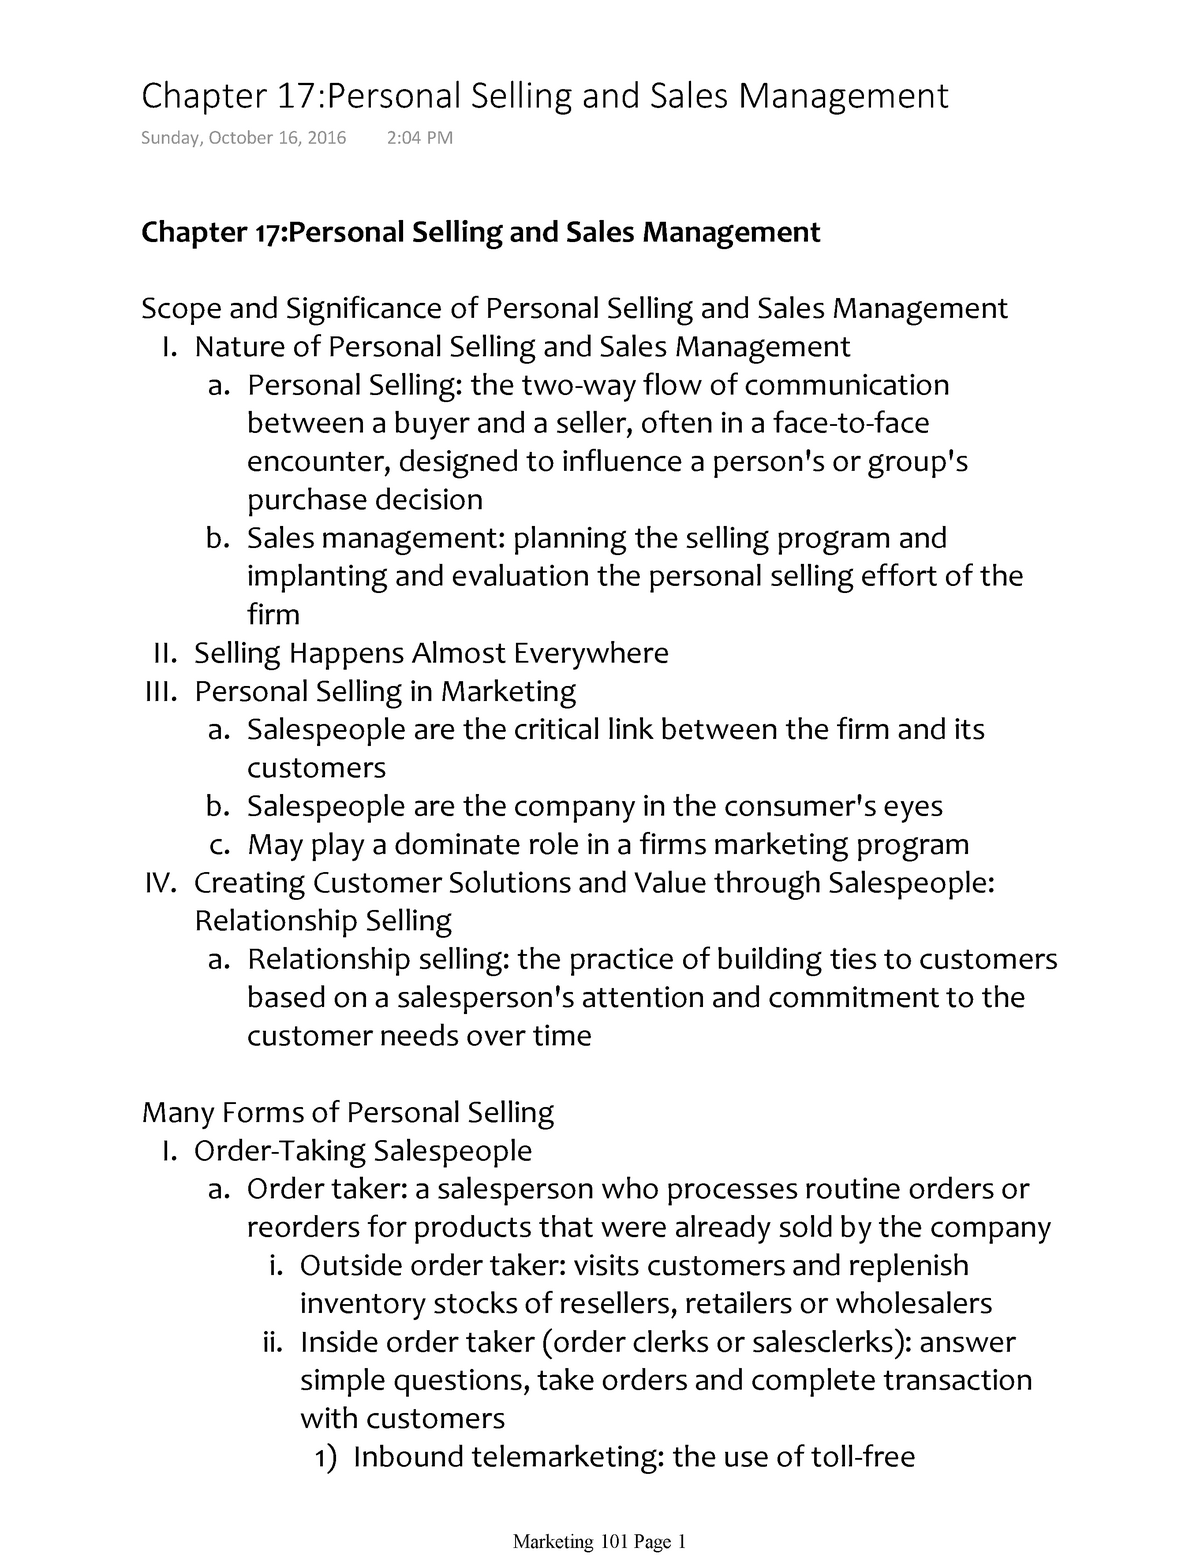 Chapter 17Personal Selling and Sales Management - MKTG 101